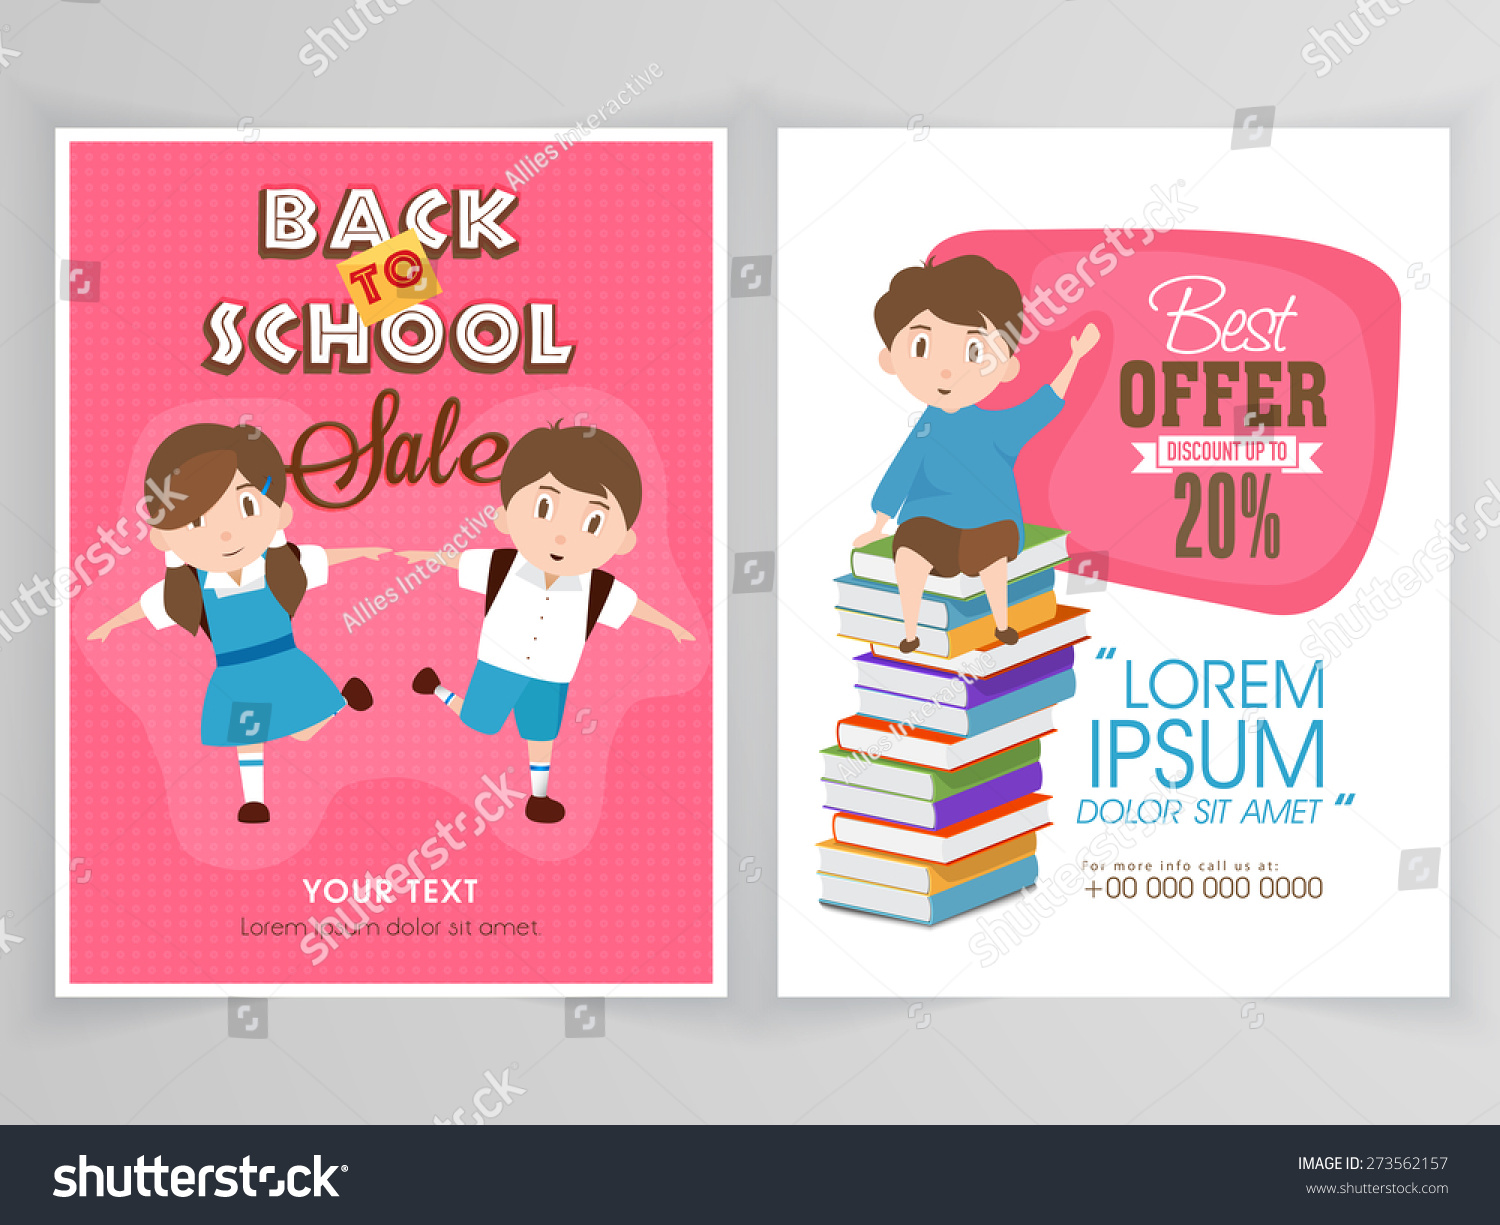 flyer template banner design back stock vector 273562157 flyer template or banner design for back to school discount offer on educational